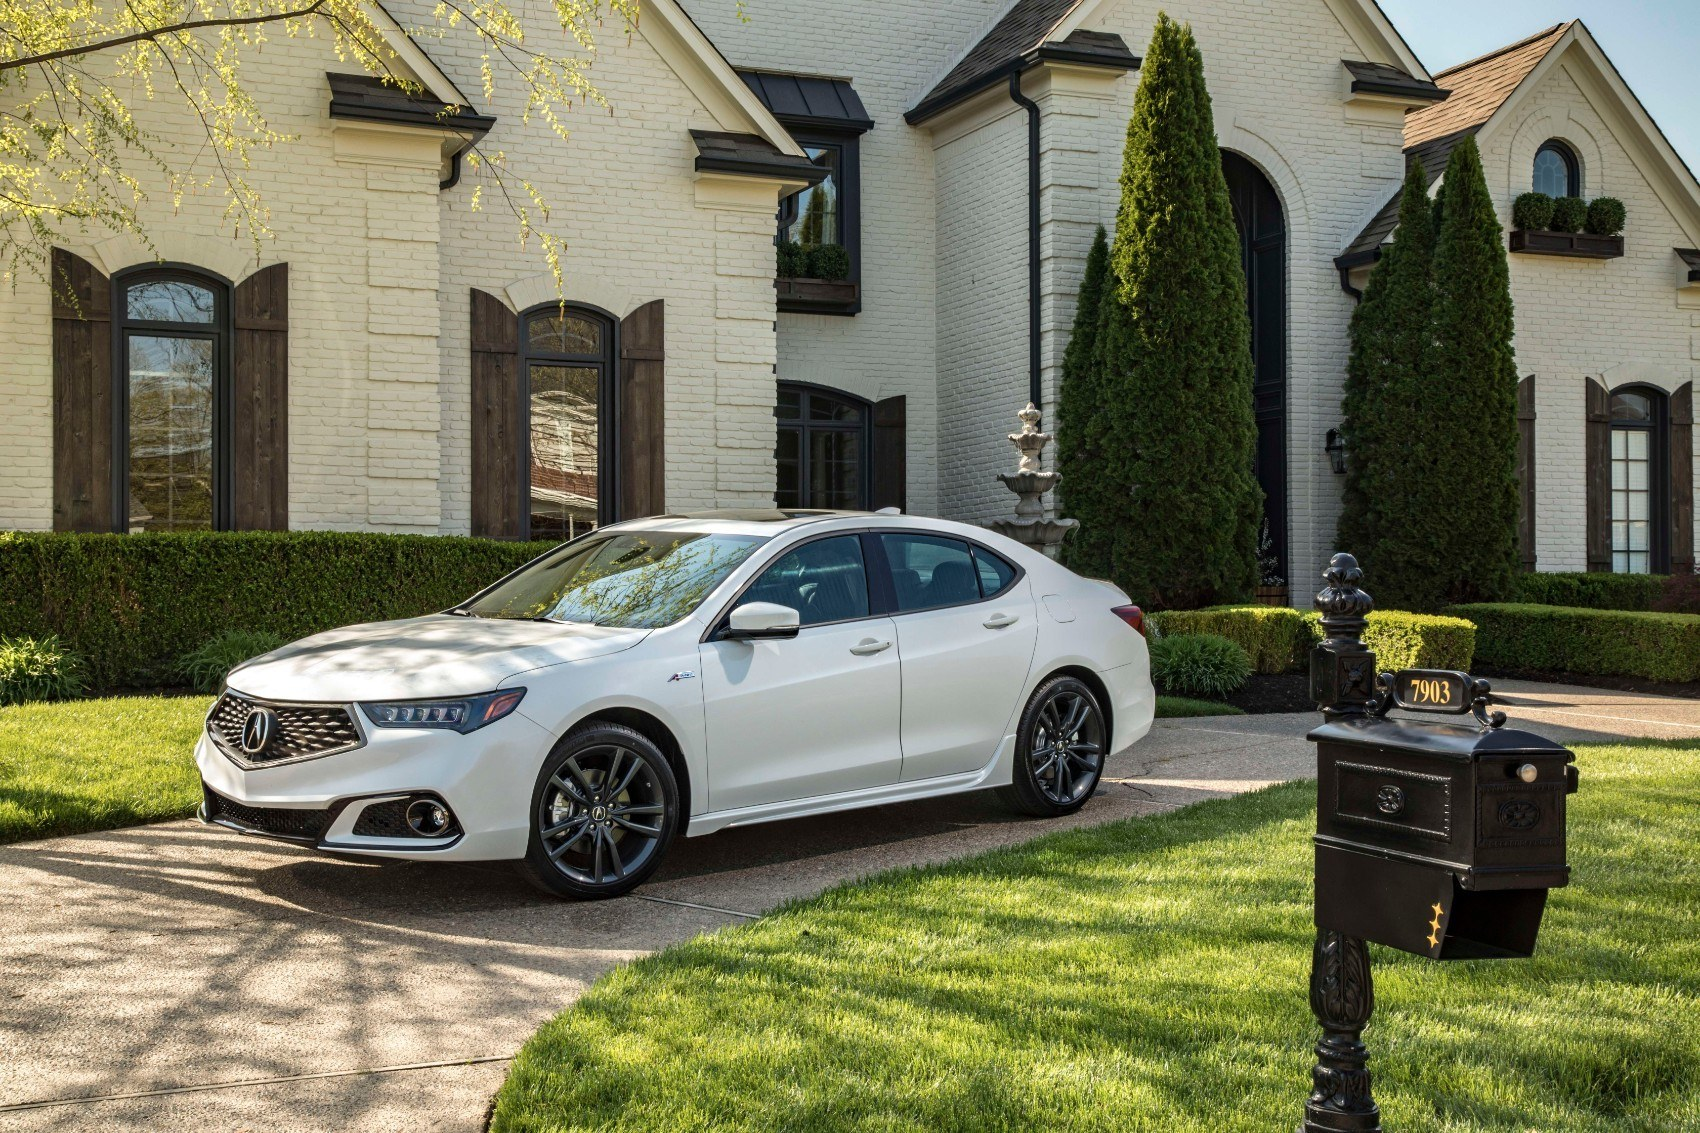 2020 Acura Tlx Review.Complete Car Info For 81 The Best 2020 Acura Tlx Performance